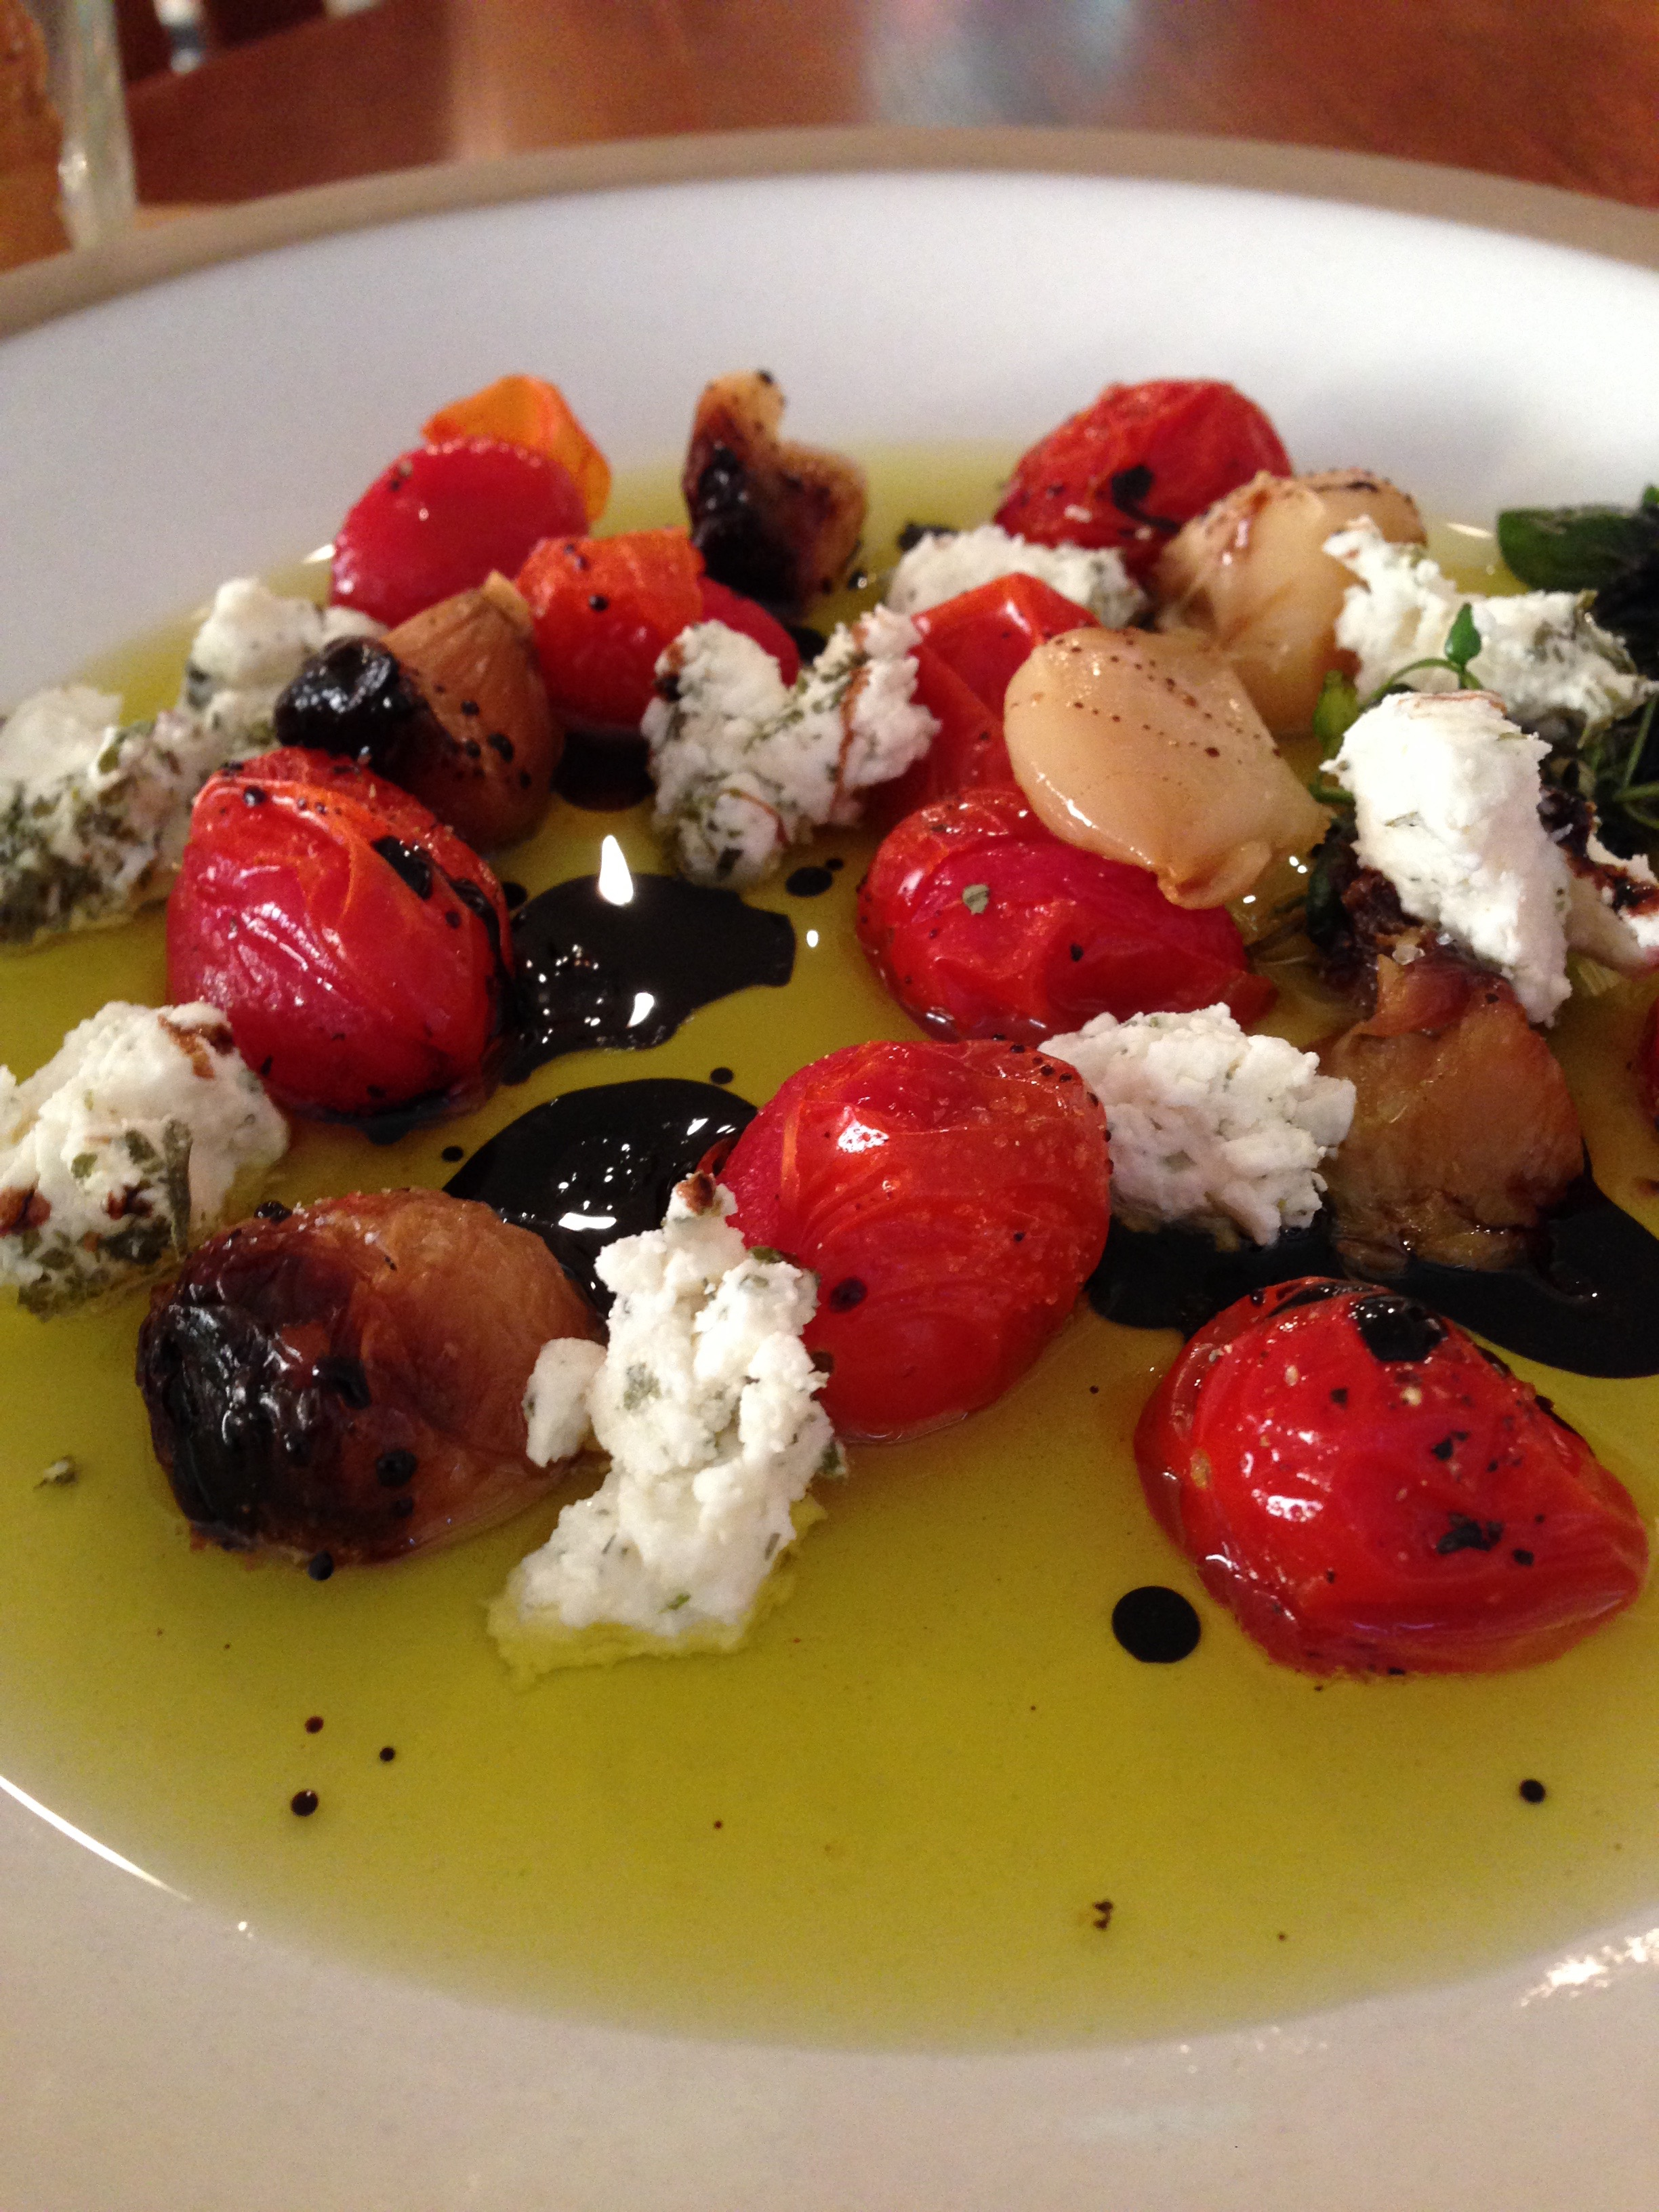 Olive Oil & Balsamic Reduction Appetizer